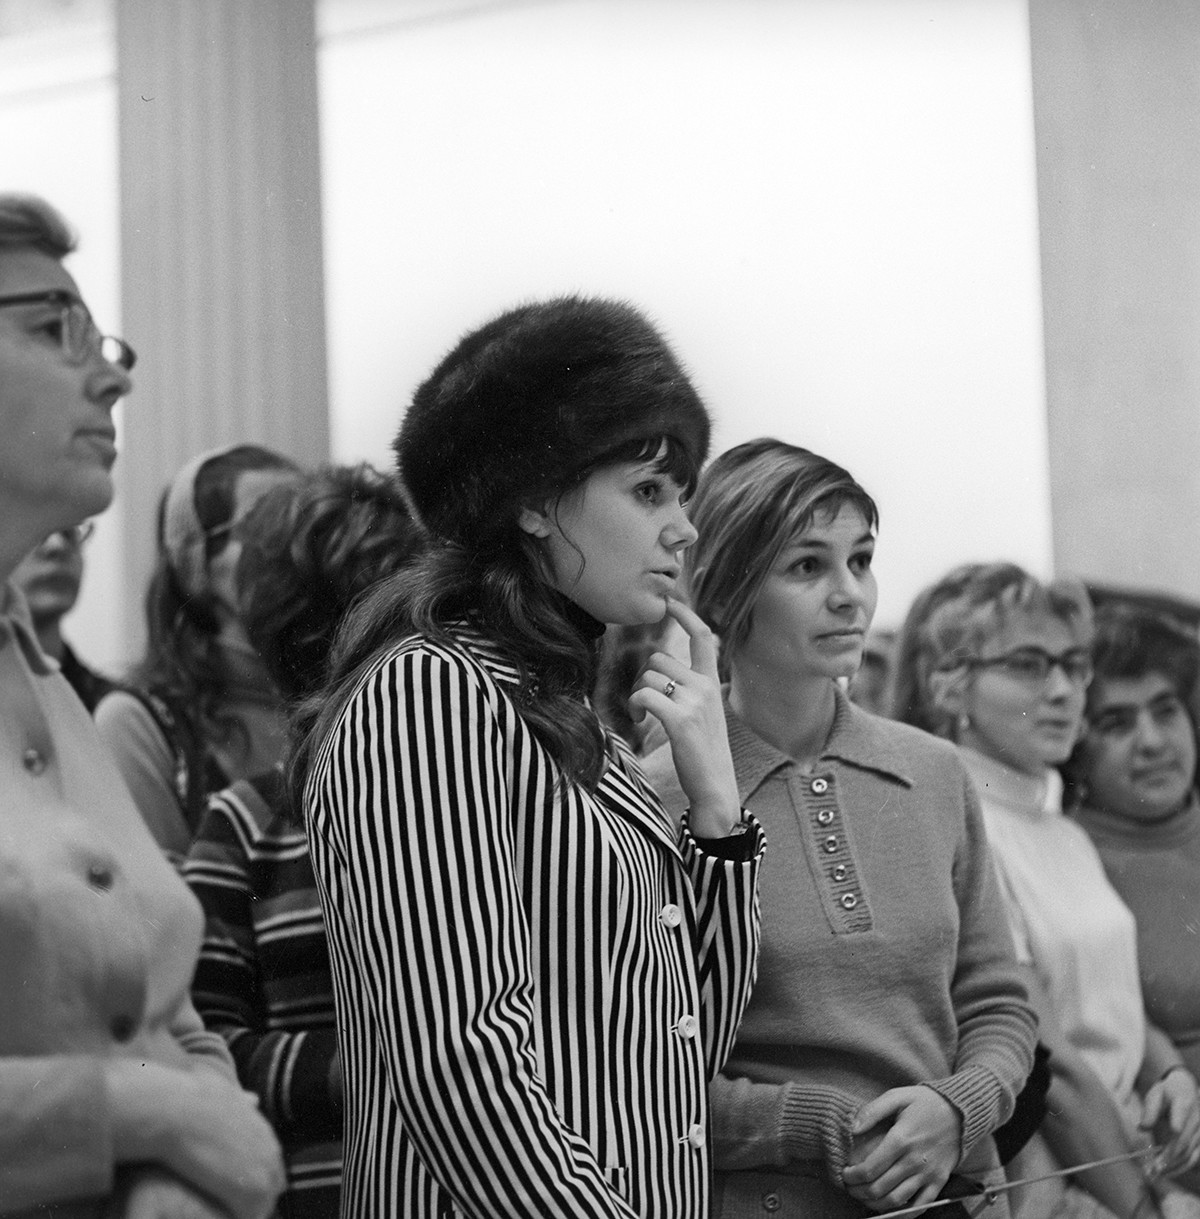 At the Pushkin Museum of Fine Arts in Moscow, 1972.